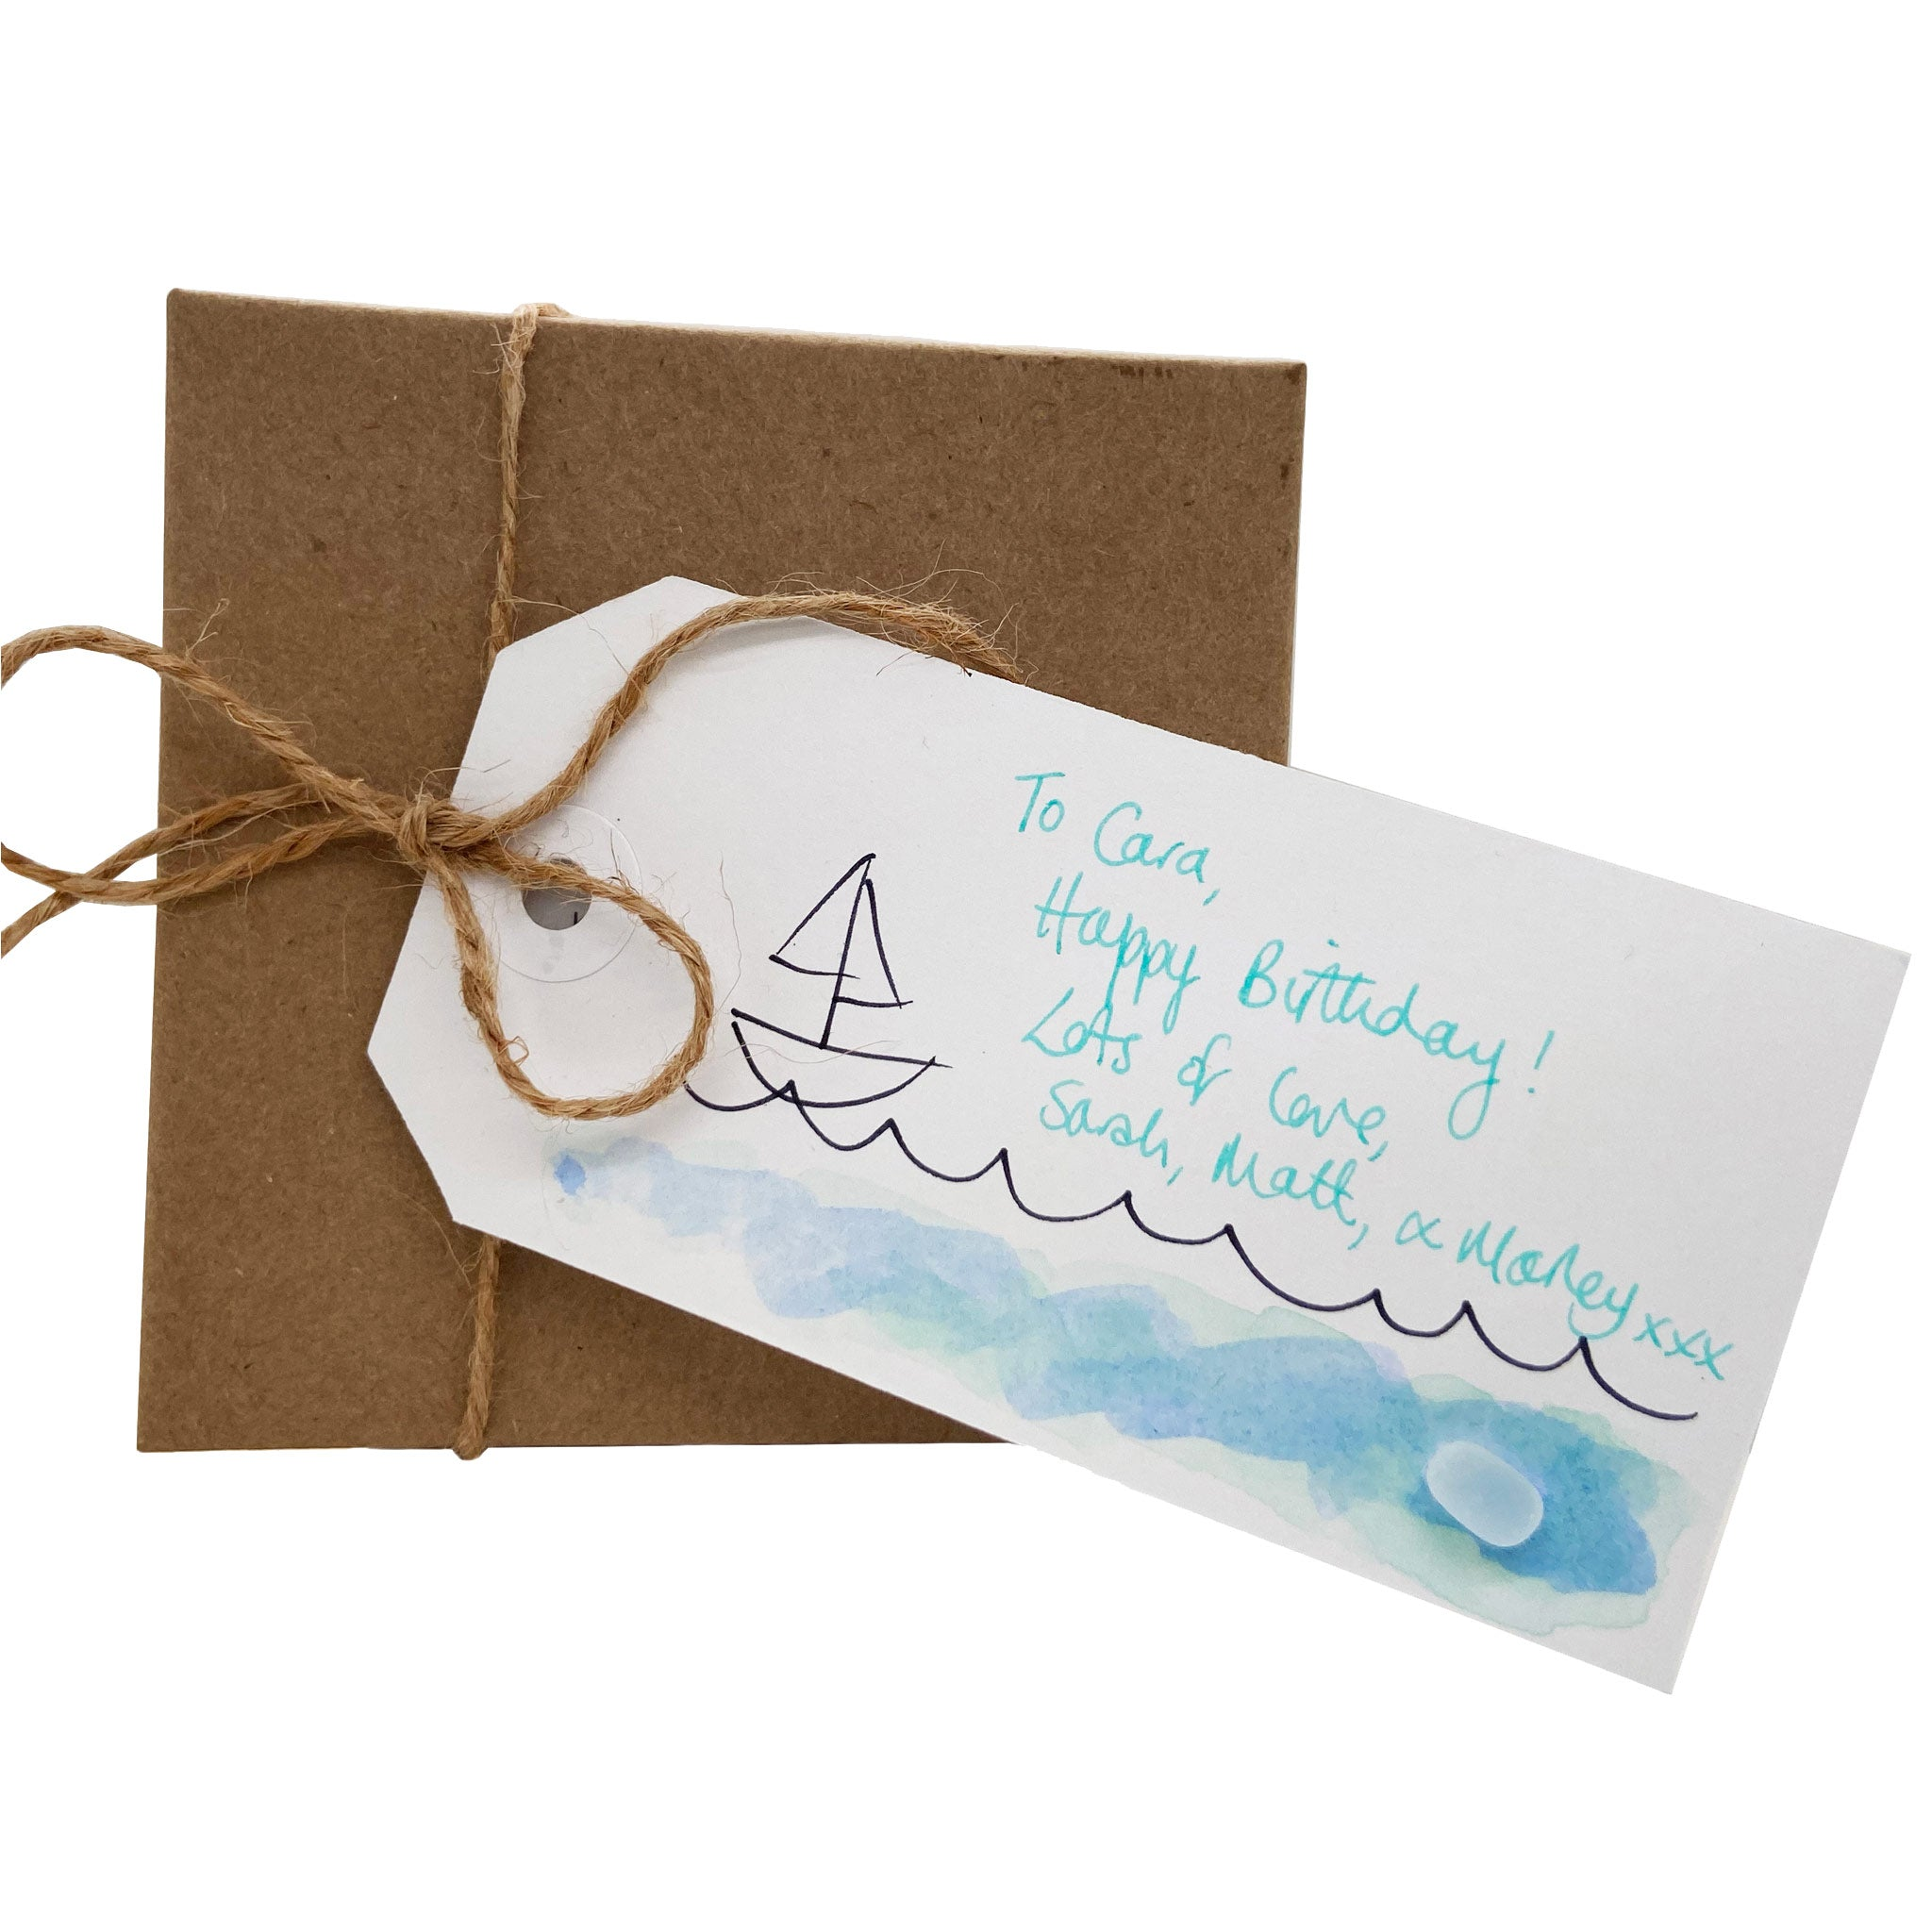 sea glass gift tag present for loved one kriket broadhurst jewellery Australia